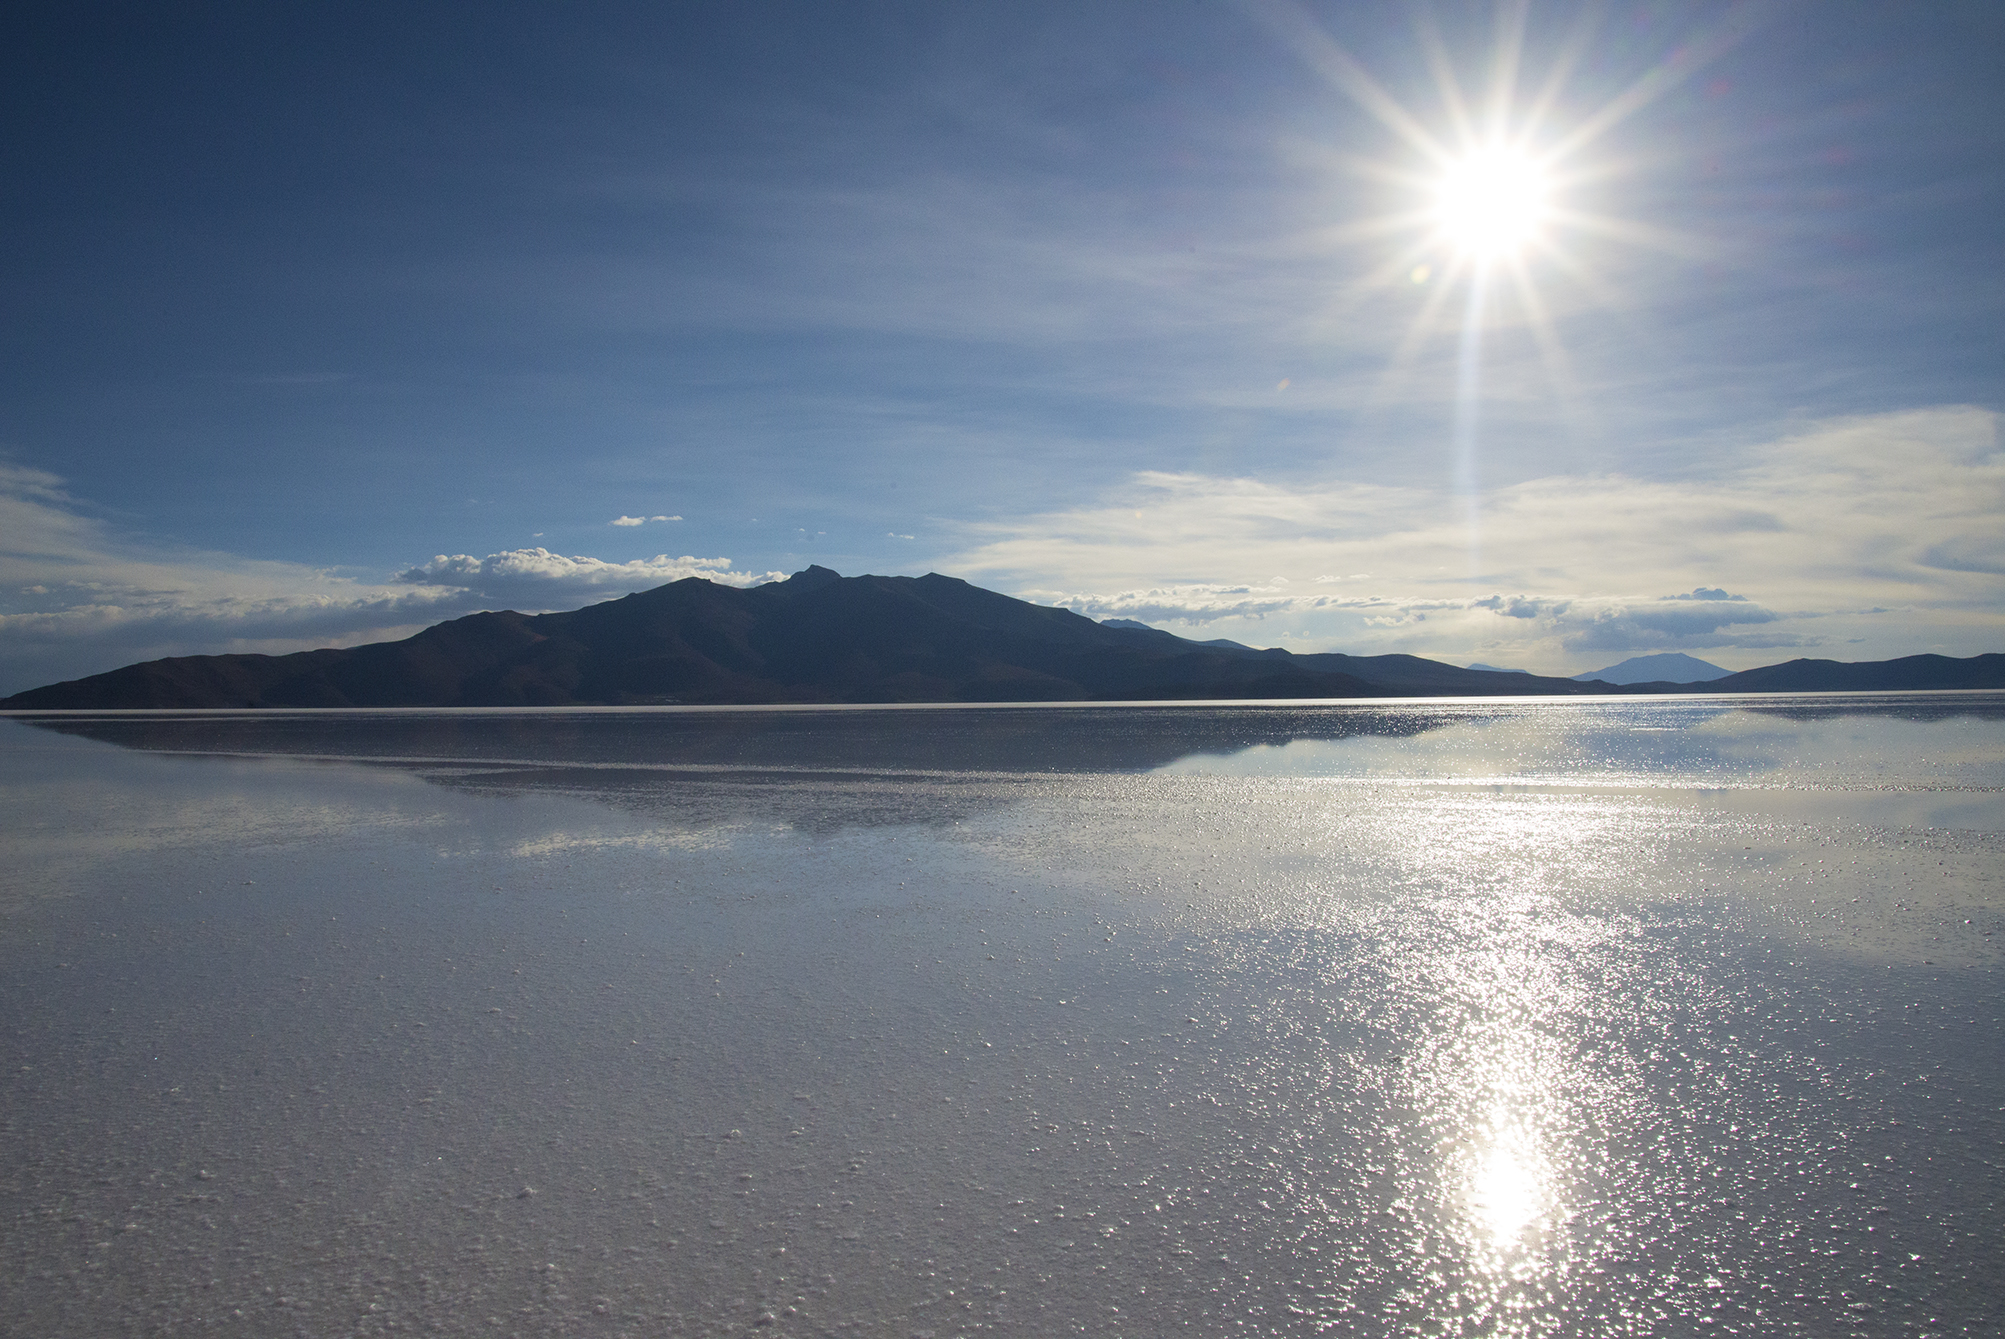 On a salar in Bolivia, wading through forming salt crystals in the water before the sun sets.